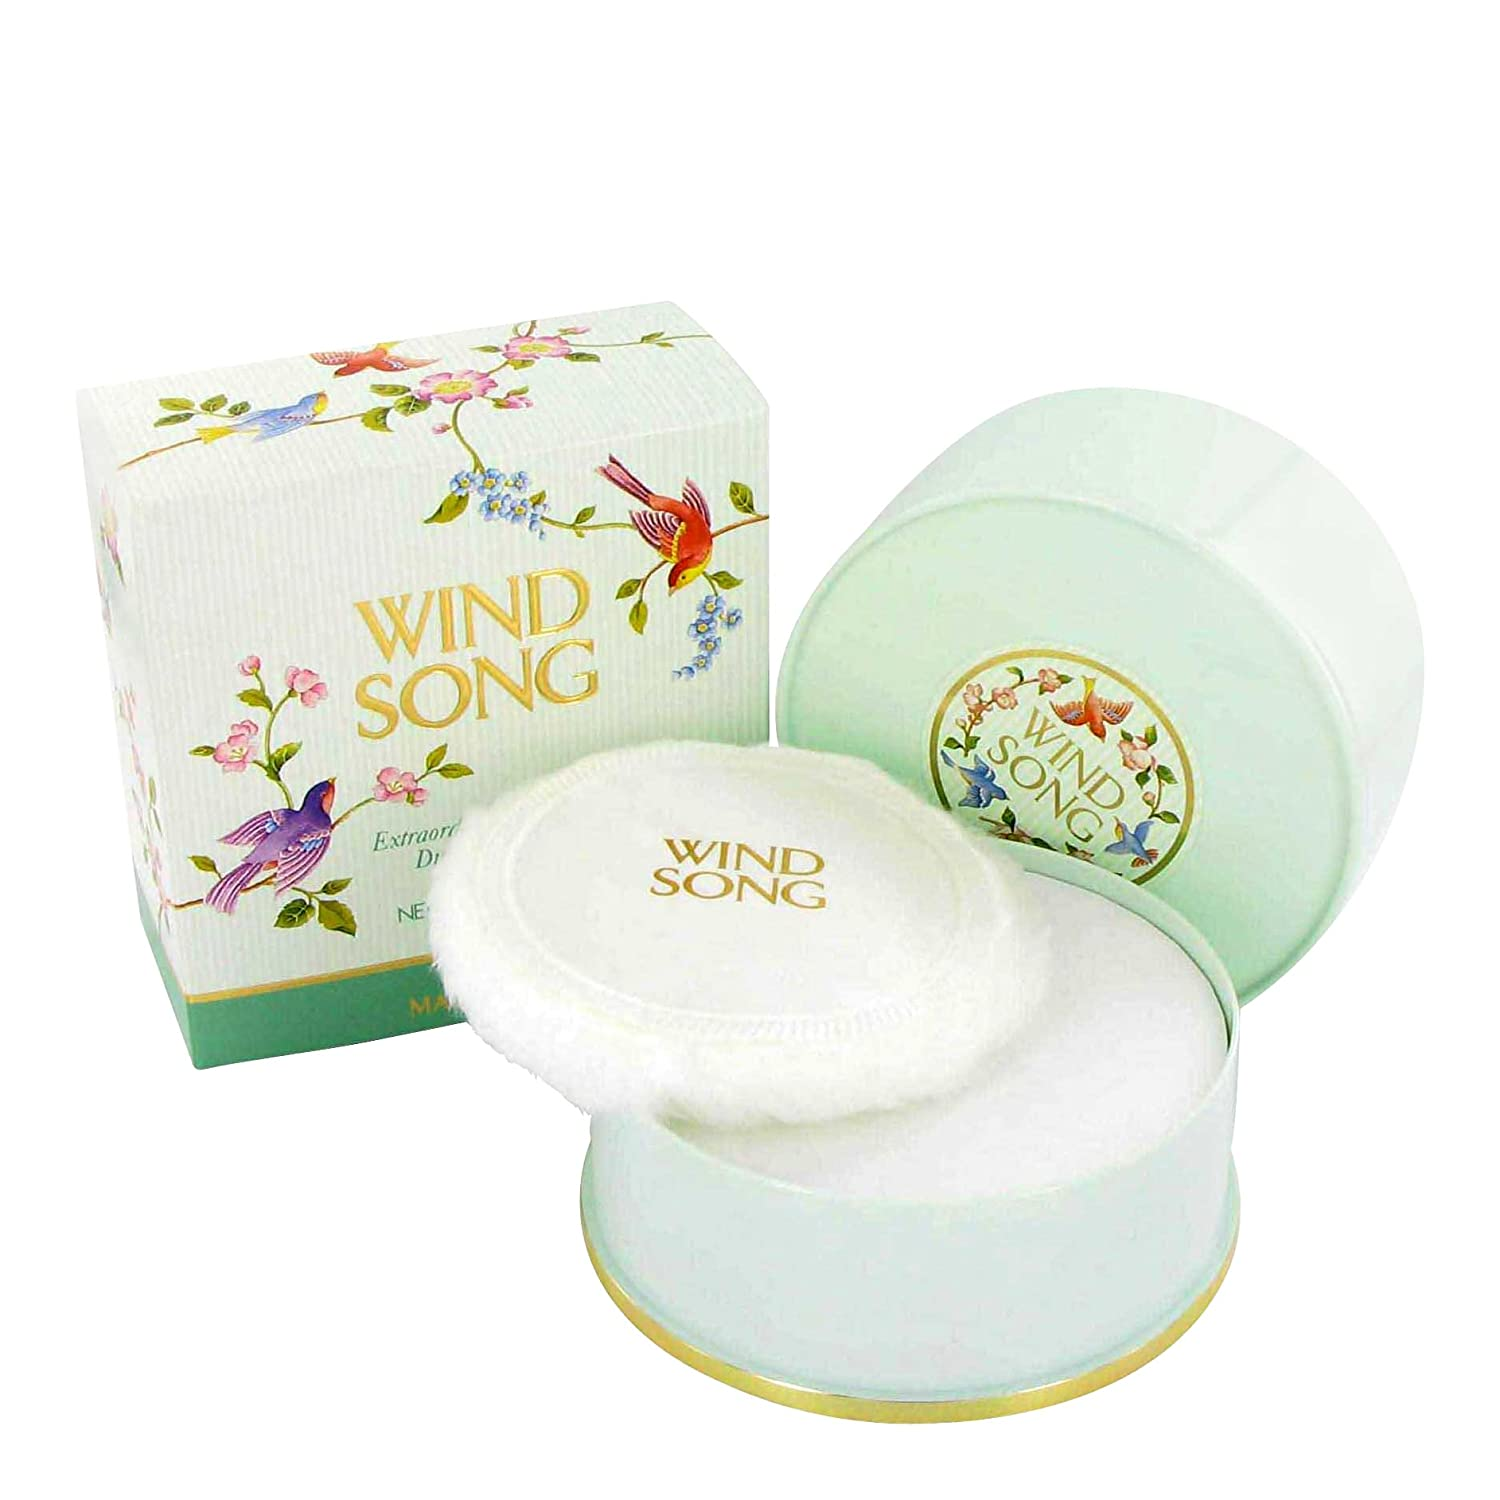 Wind Song Dusting Powder for Women by Prince Matchabelli, 4 Ounce